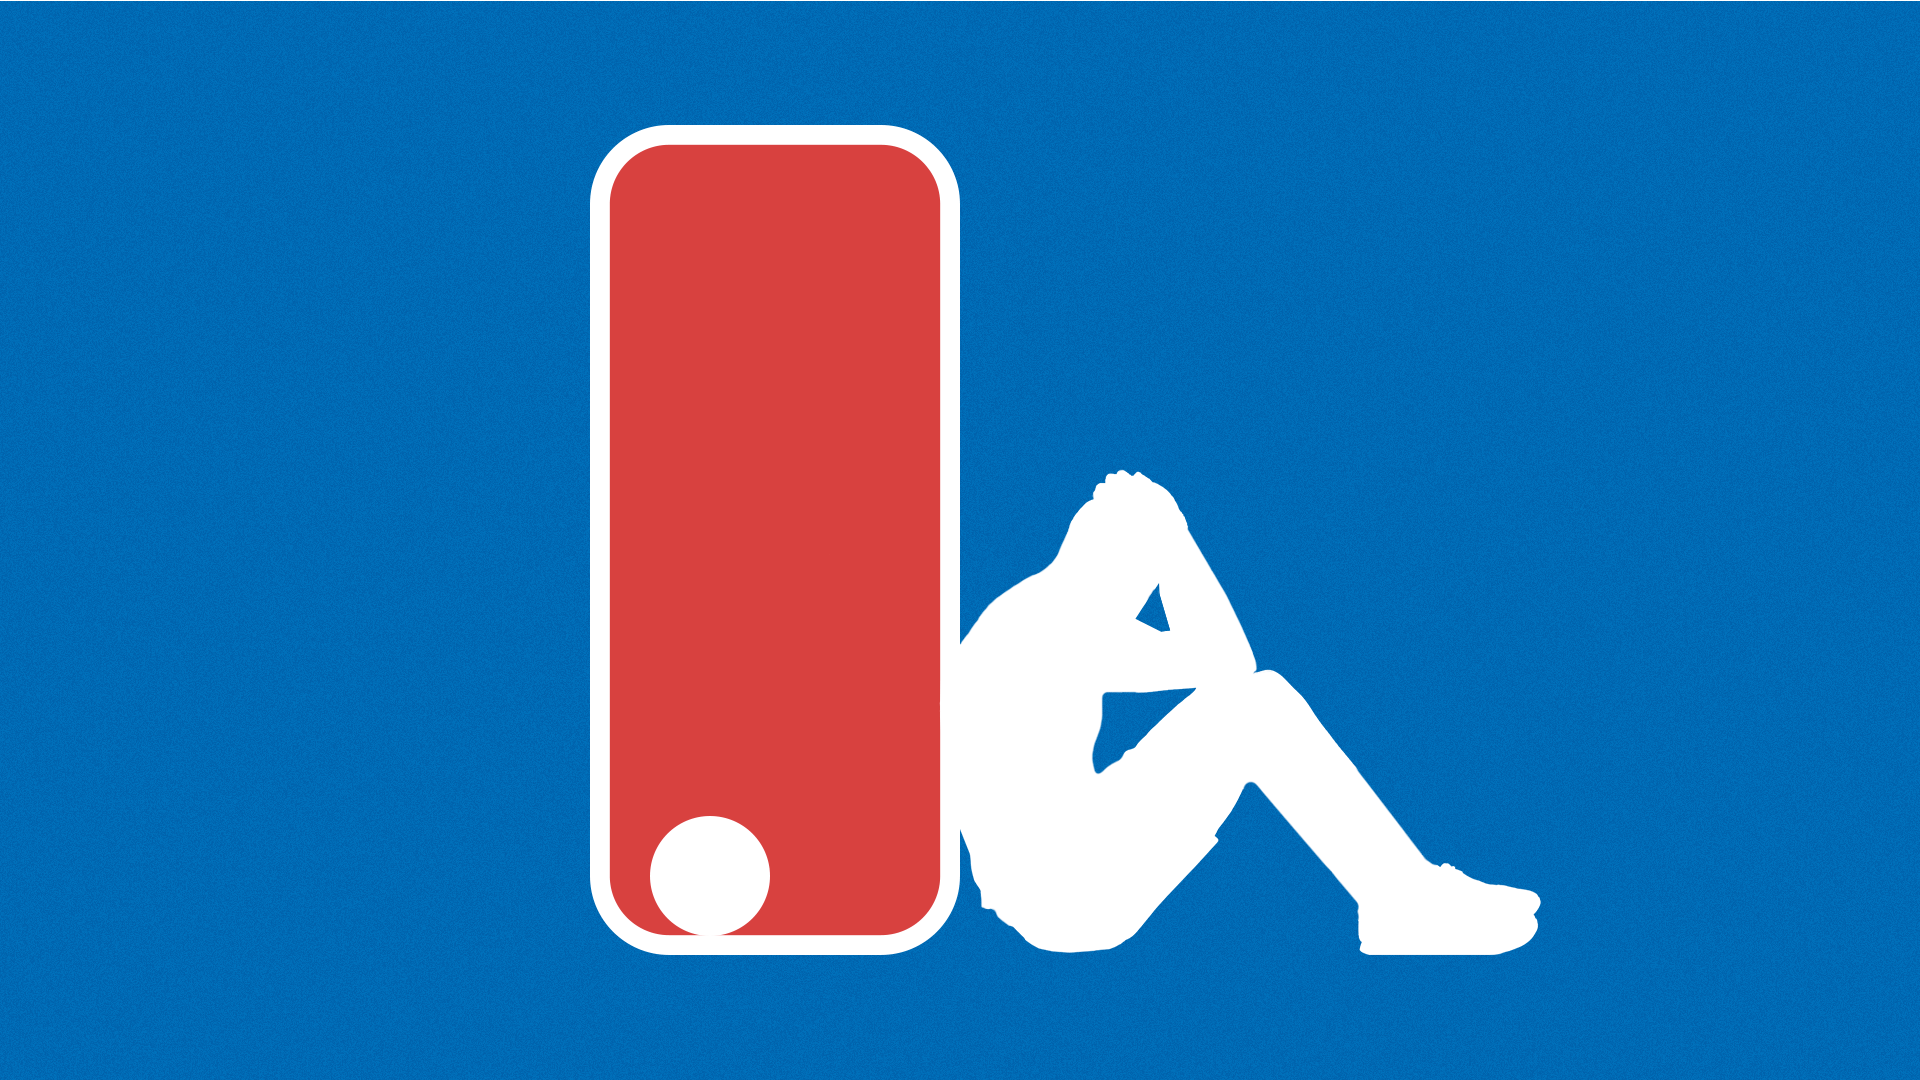 Illustration of the NBA logo with the ball left abandoned and the player sitting and leaning against the outside frame of the logo with his head in his hands.